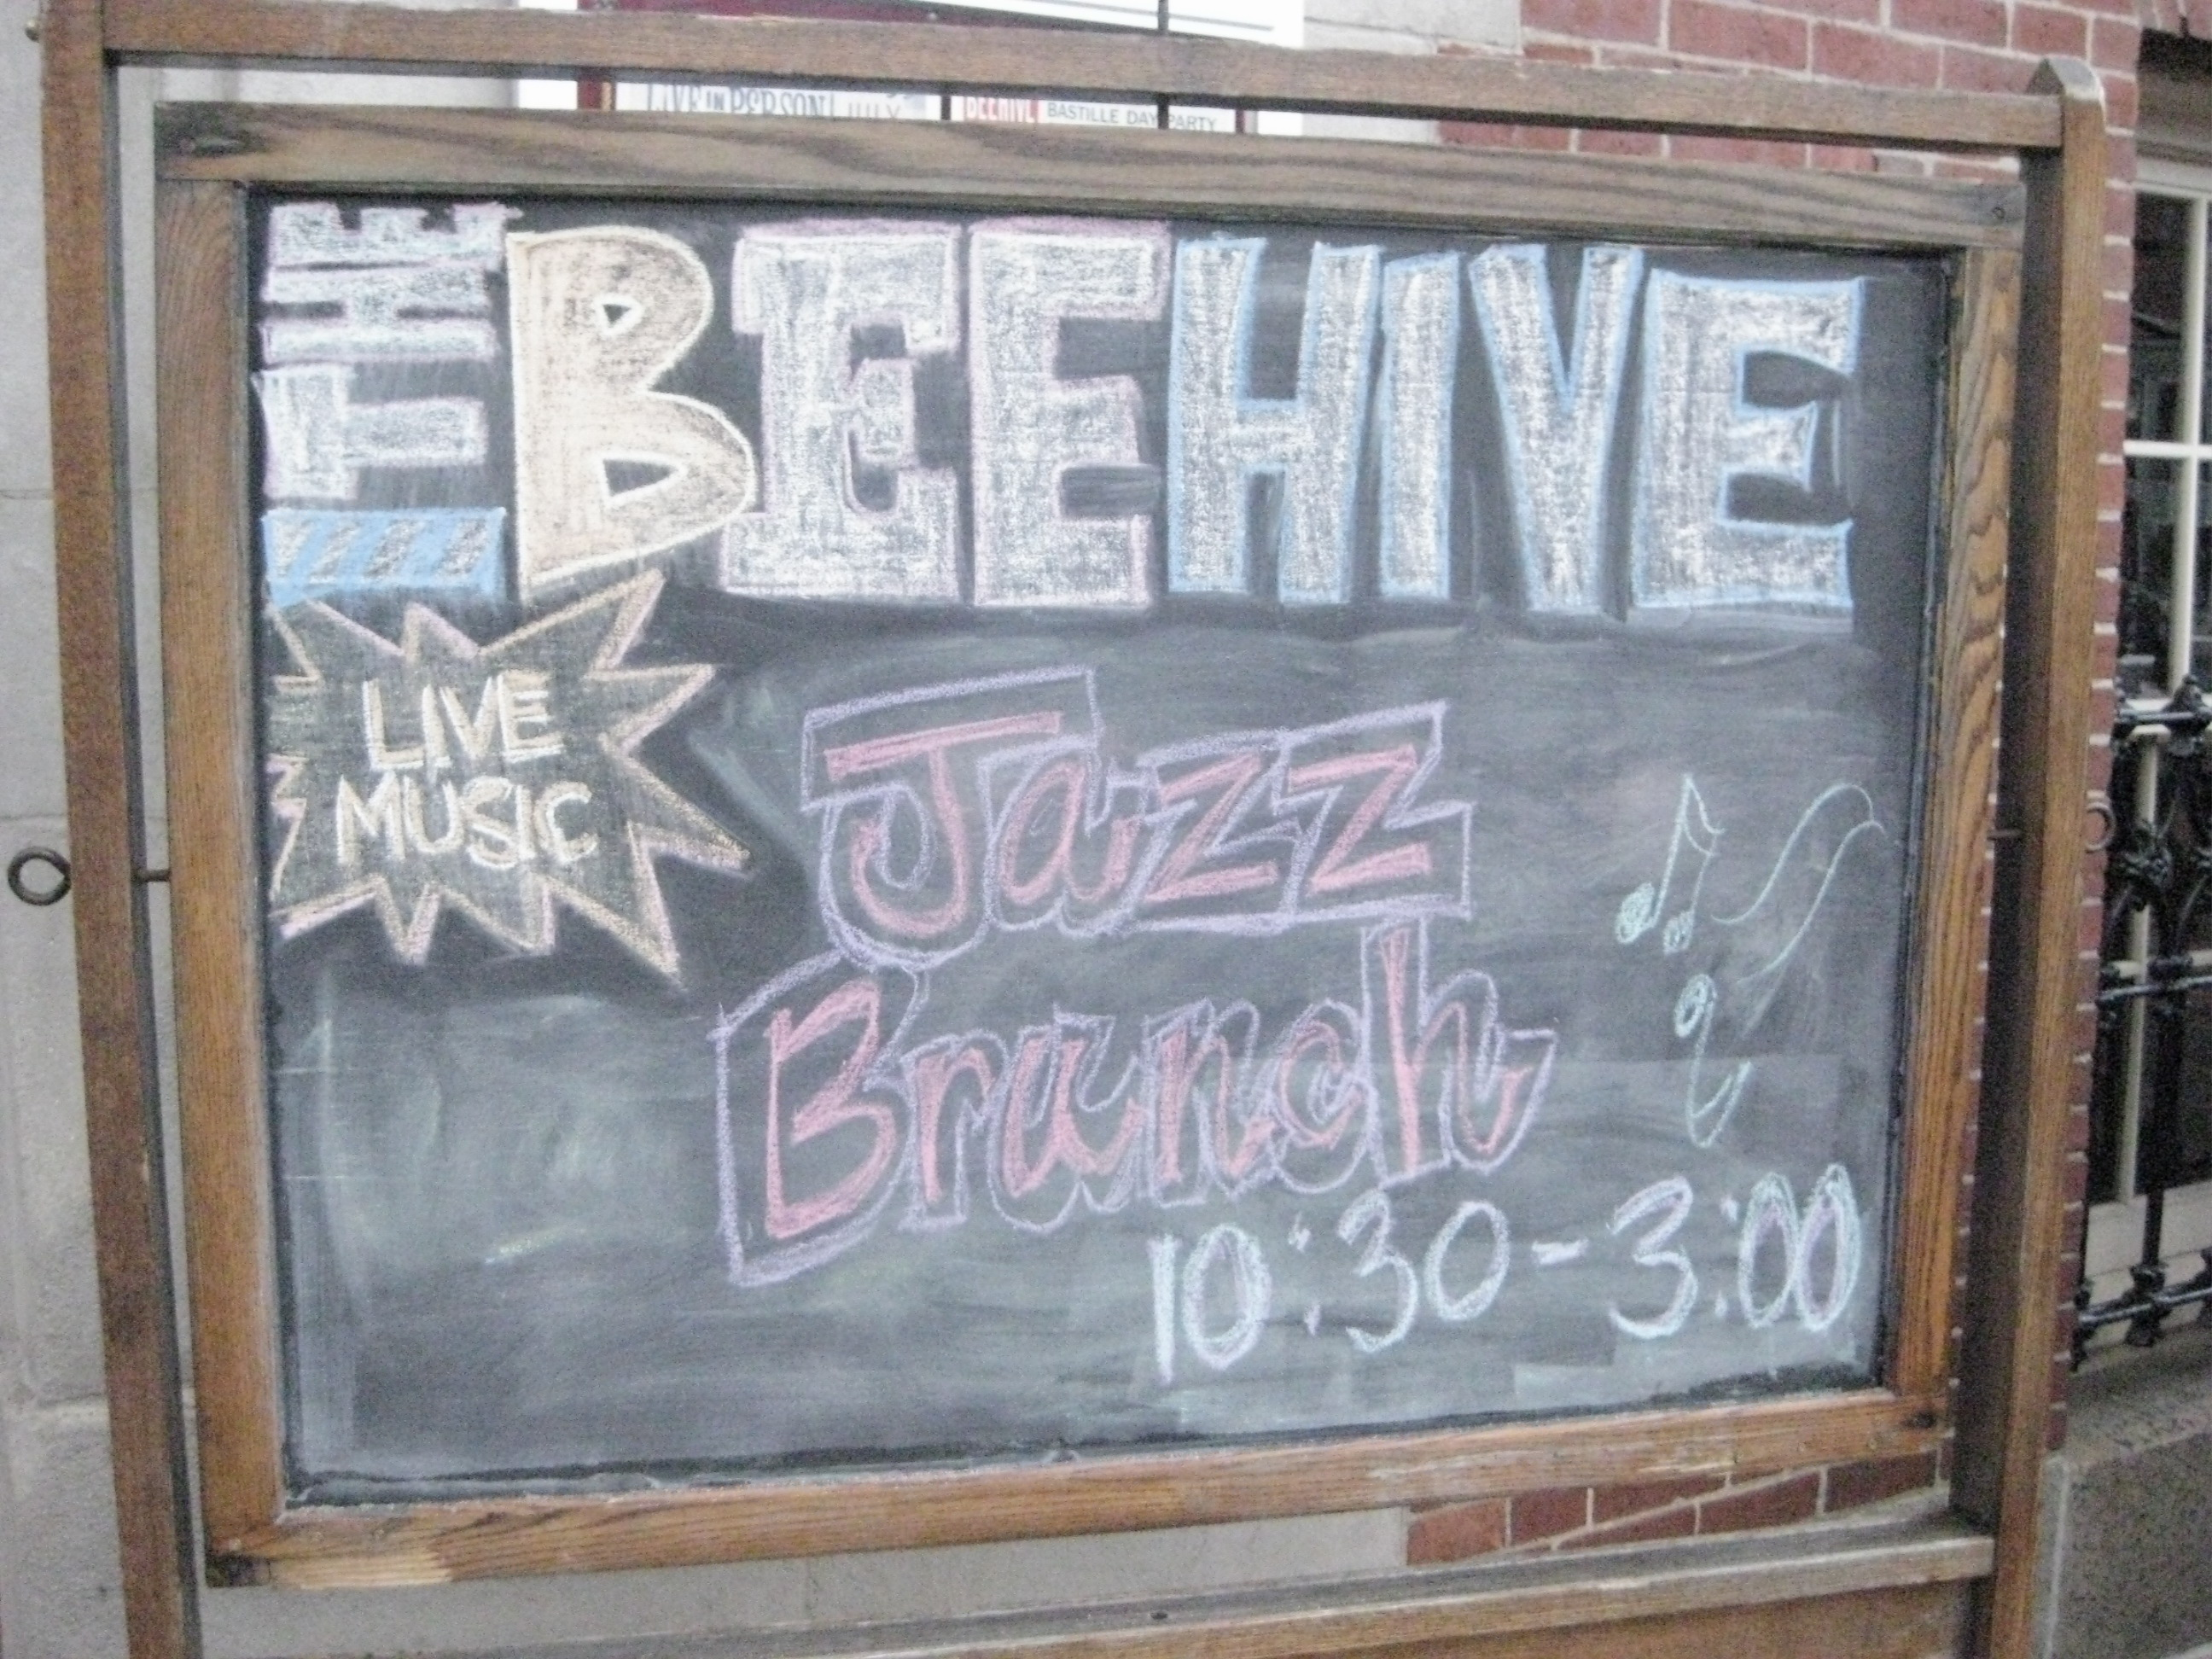 Outside the Beehive